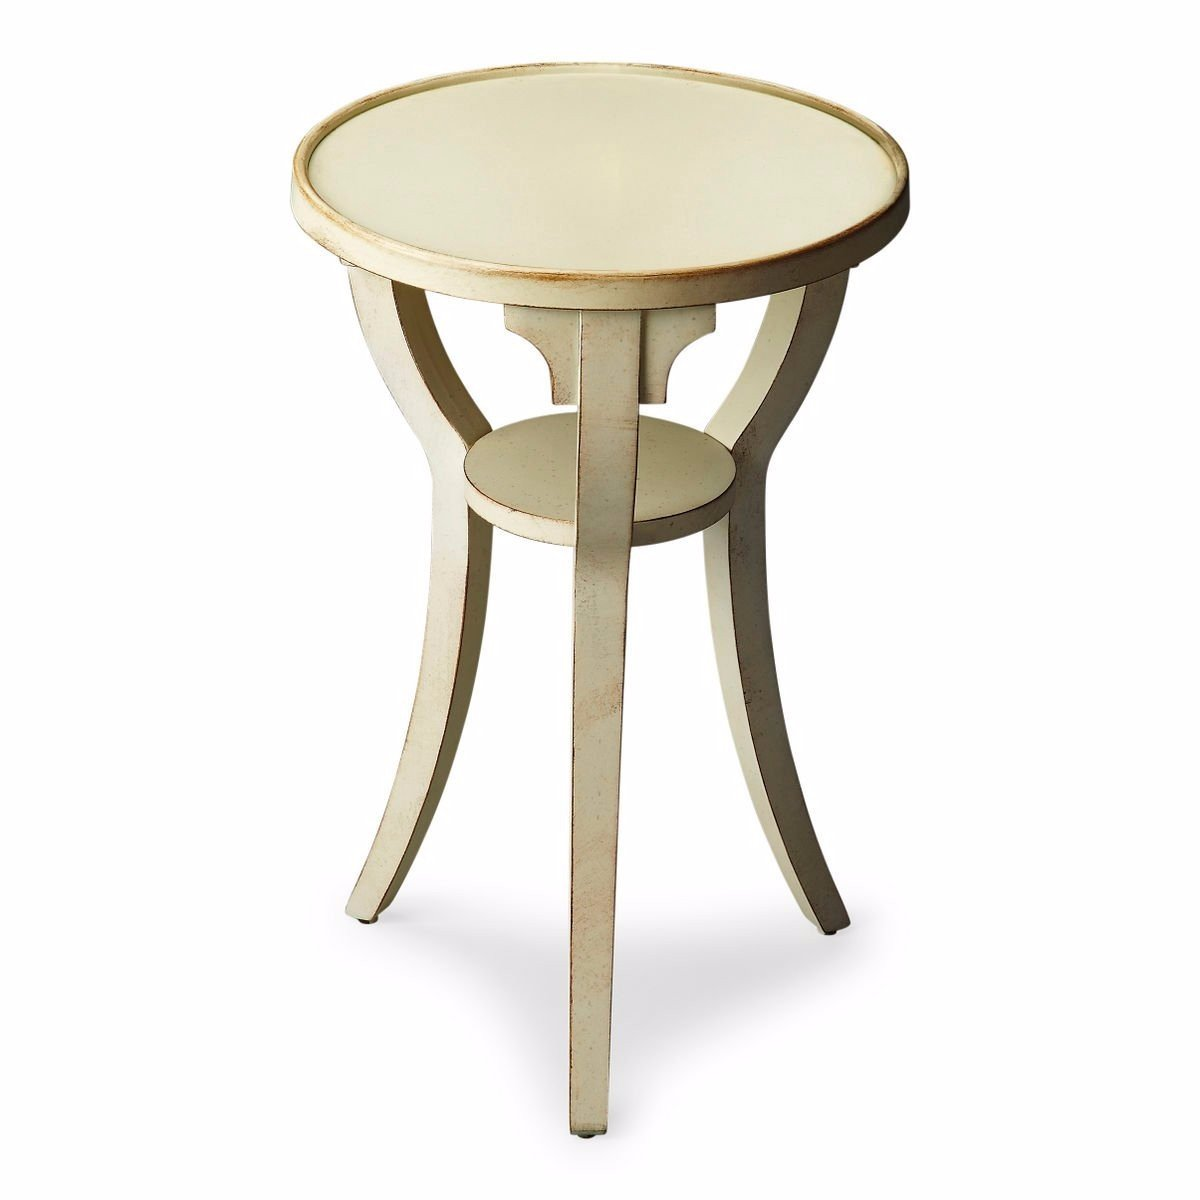 Ambiant ROUND ACCENT TABLE by Ambiant